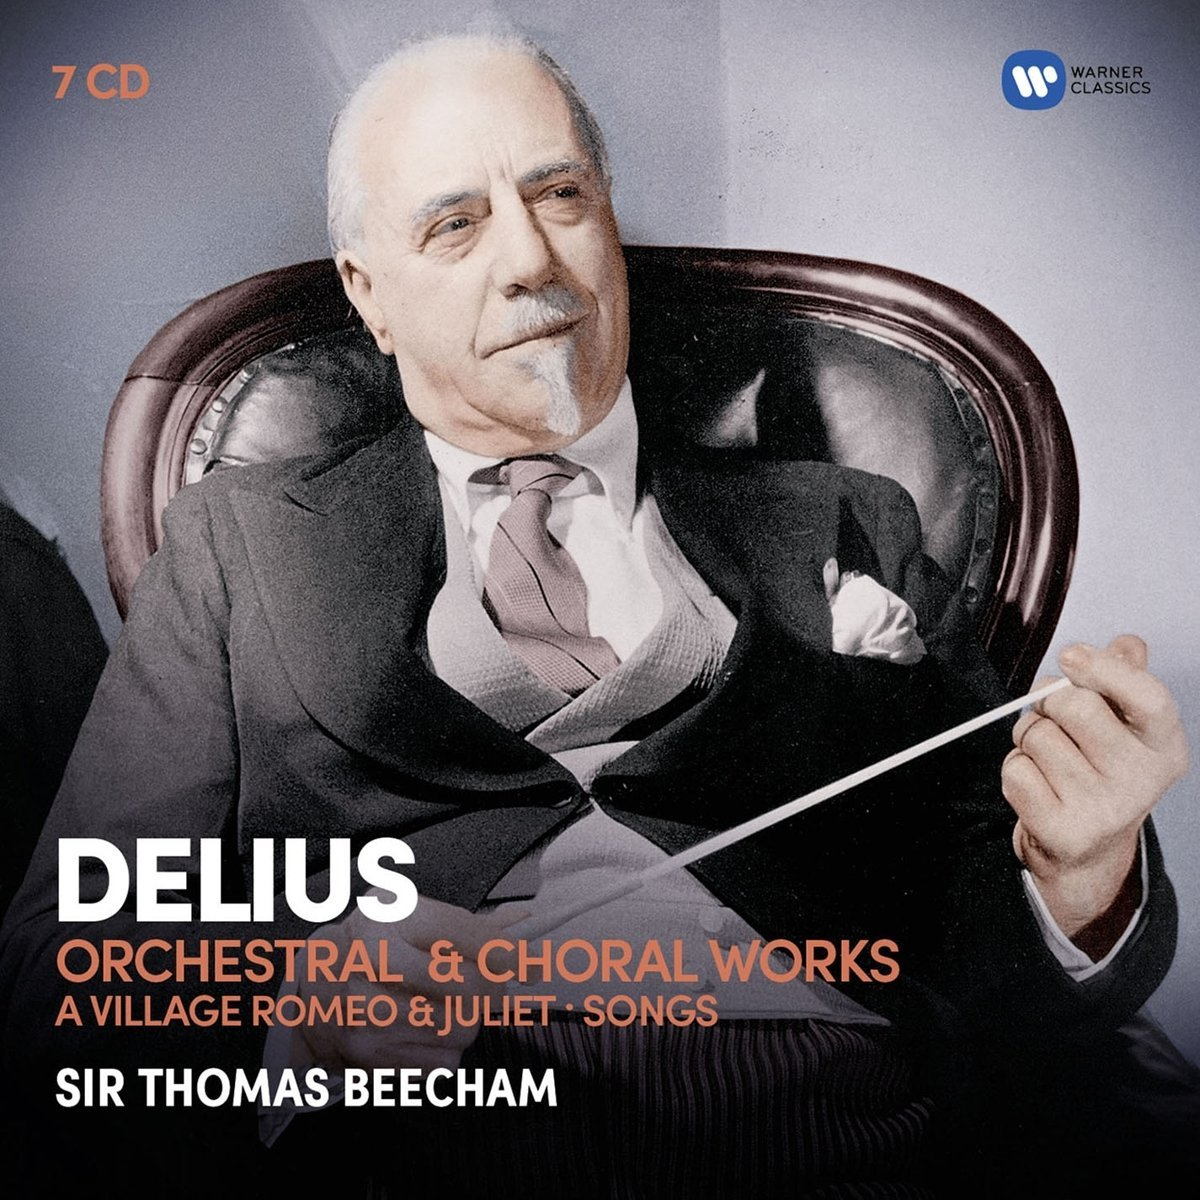 Delius (7CD) Box set Sir Thomas Beecham